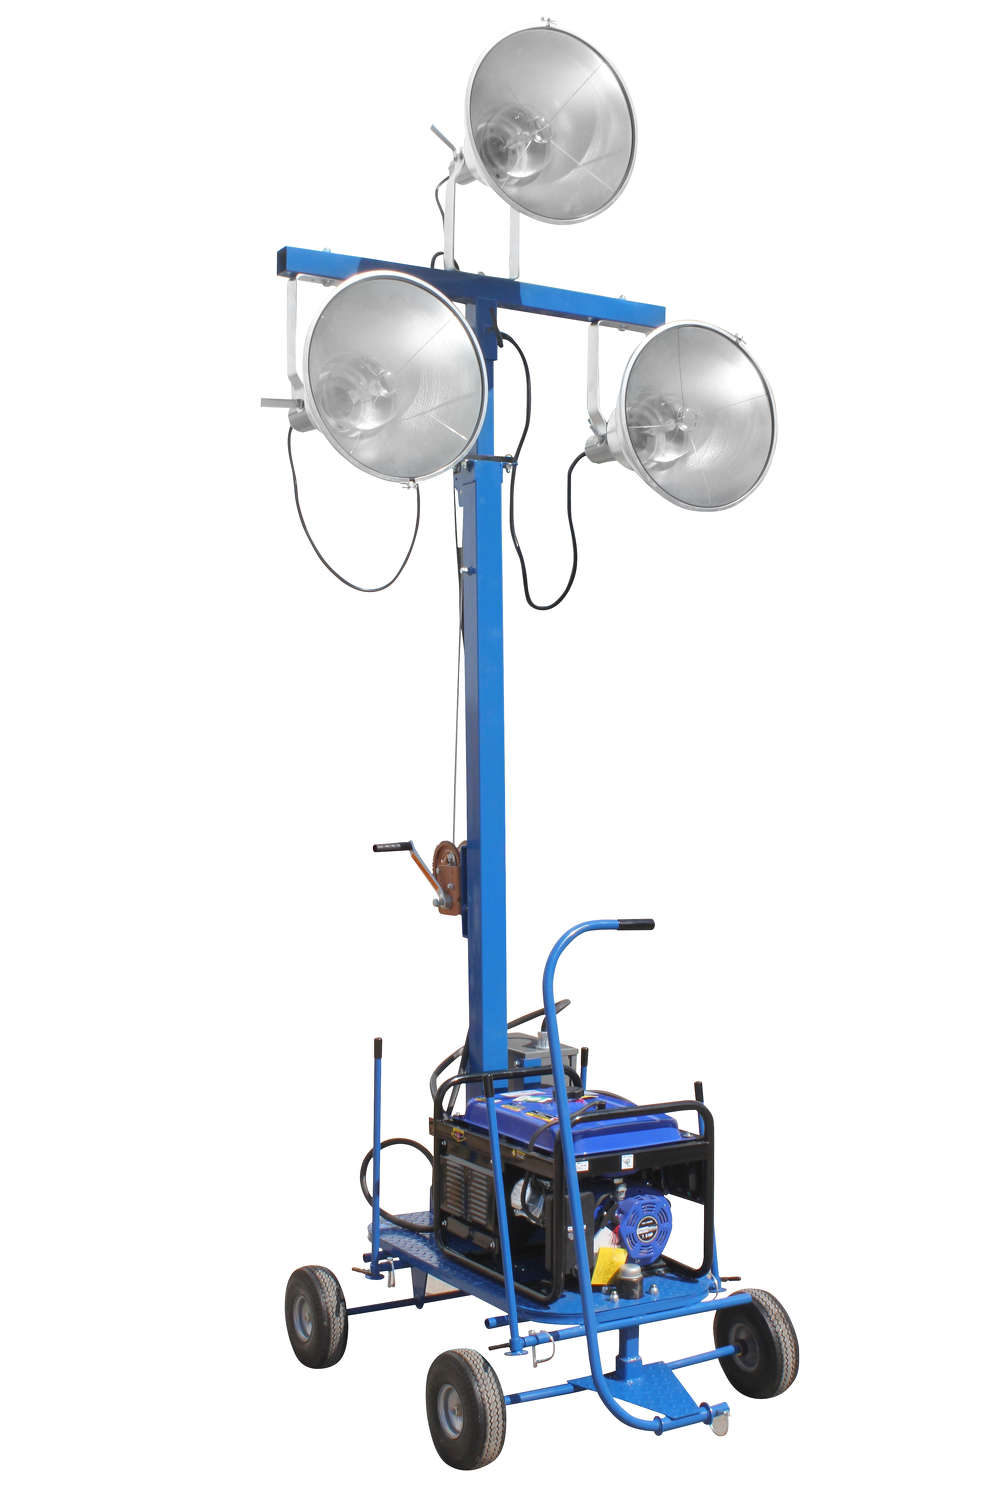 The WAL-ML-3XM-3G mini light tower from Larson Electronics is practical for operators who need a fully portable yet easy to operate light system capable of illuminating large areas.